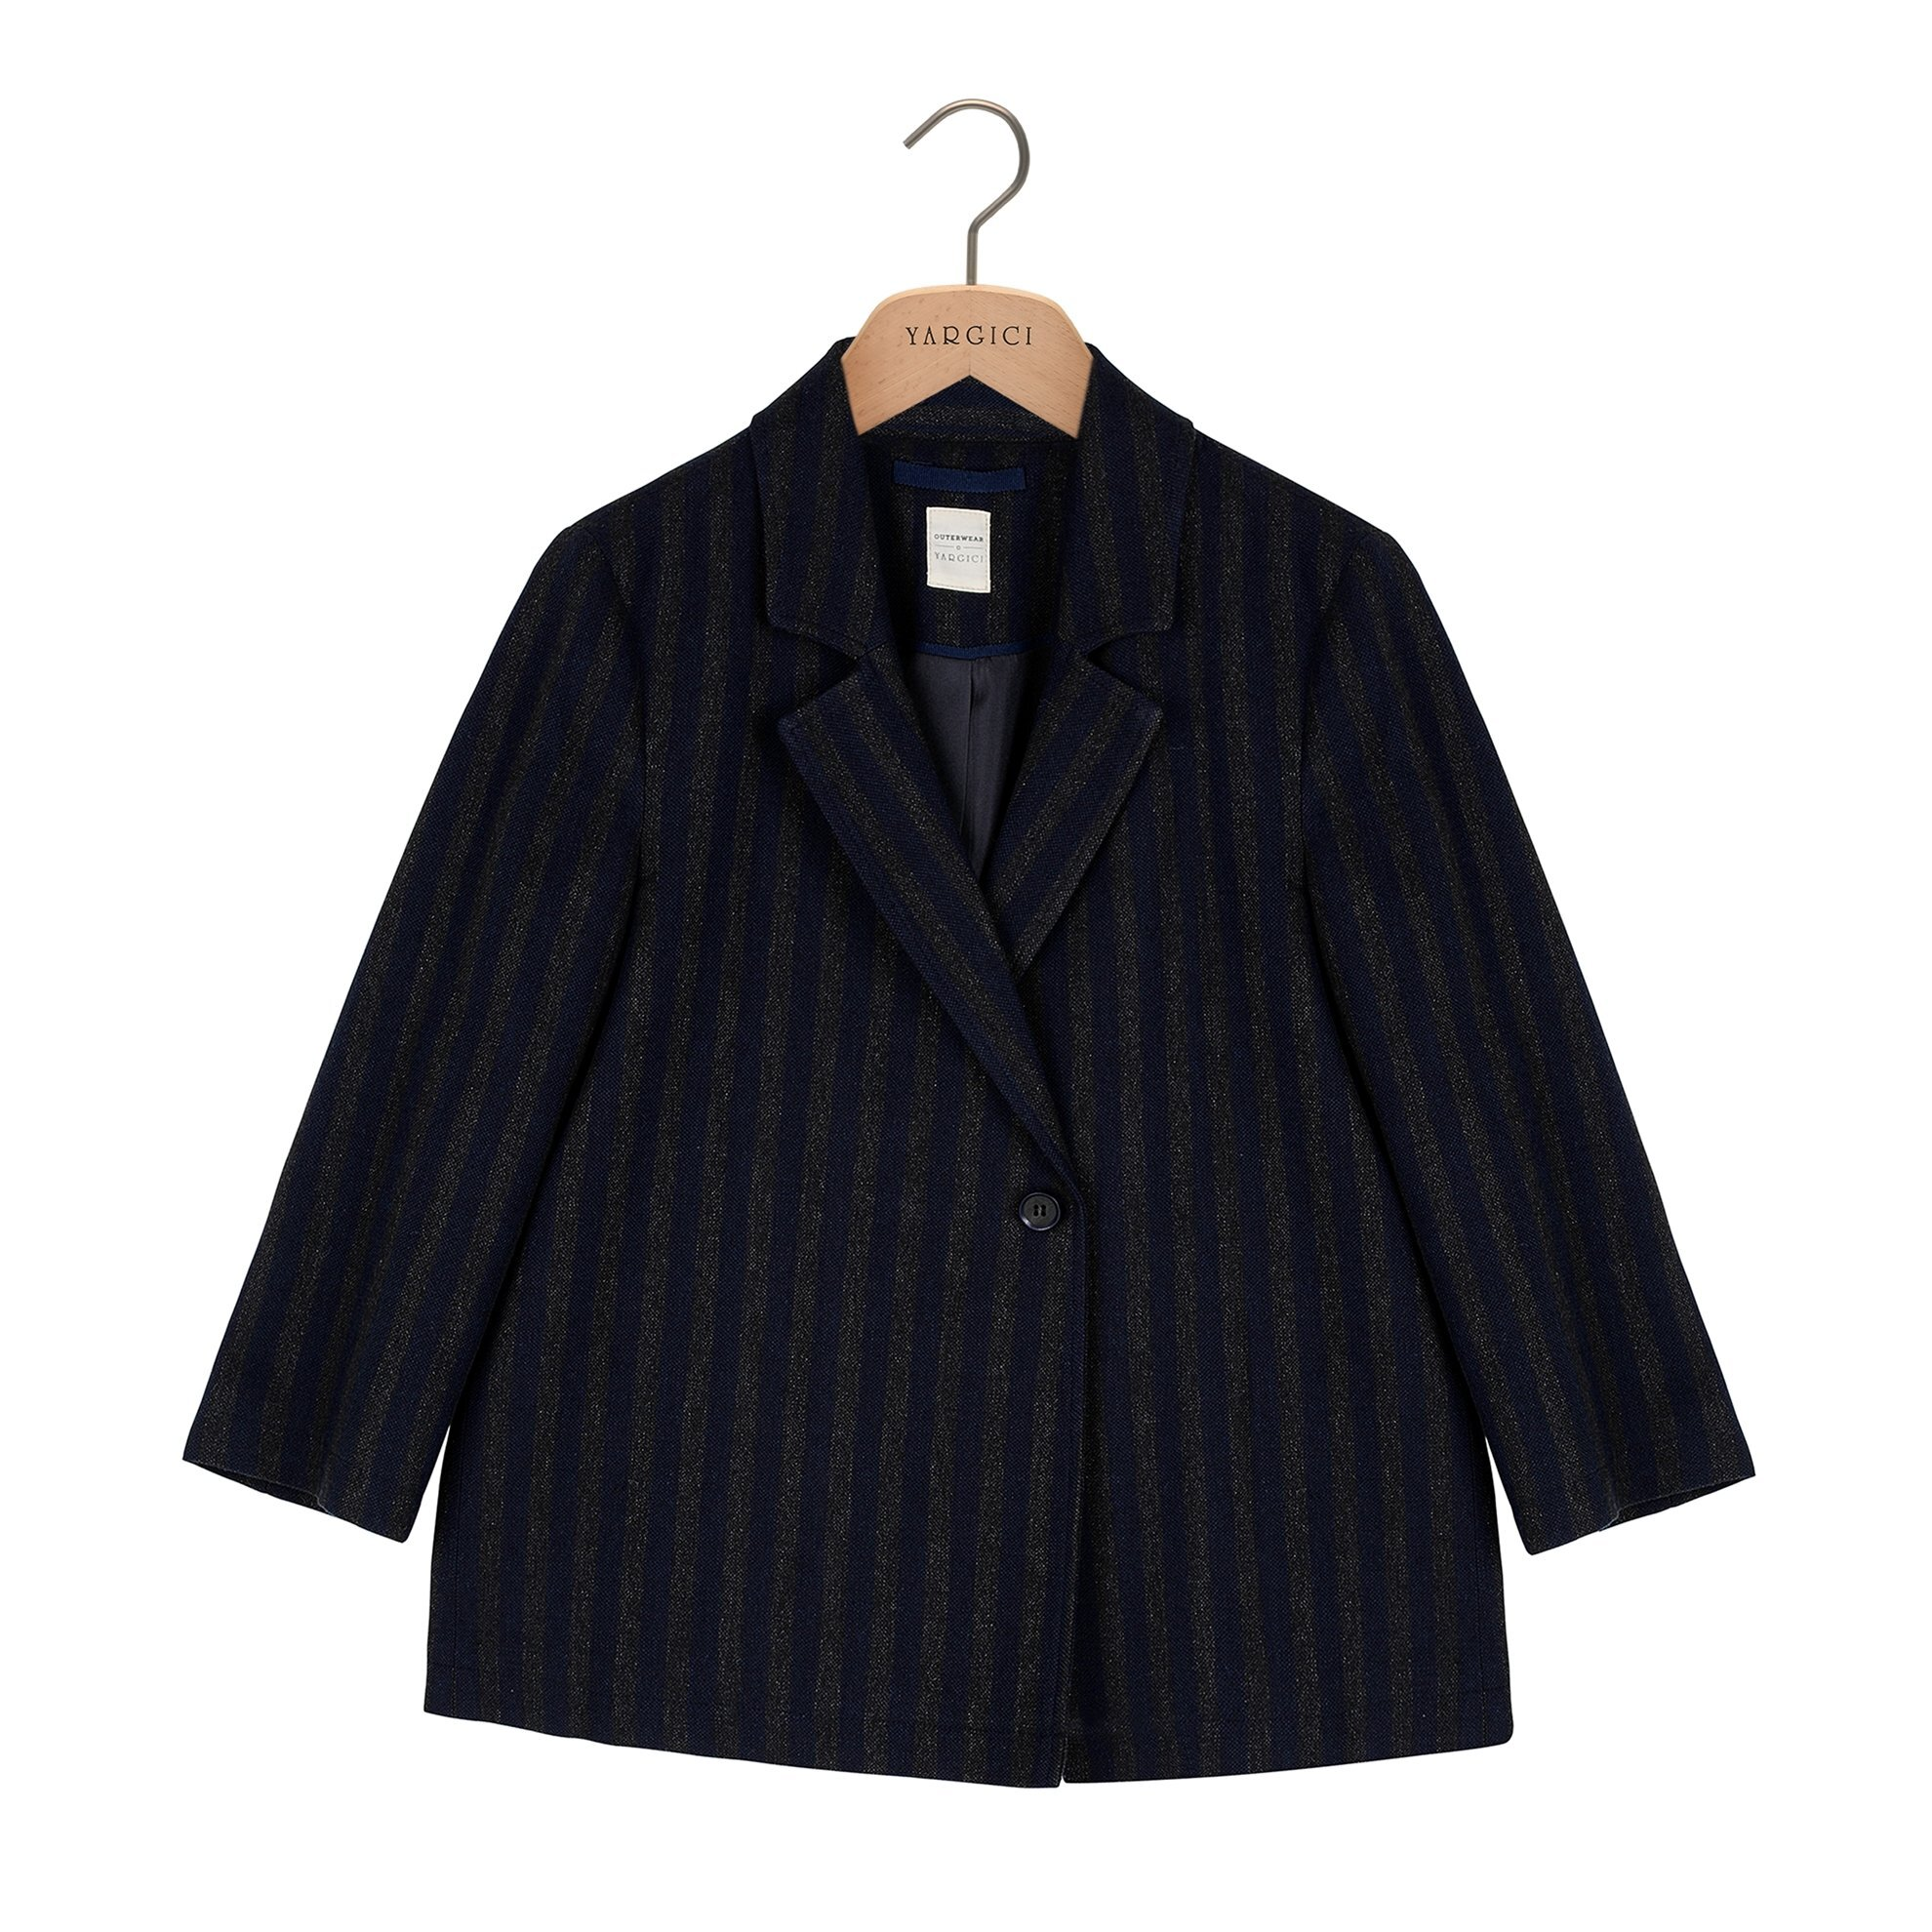 Double Breasted One Button Jacket